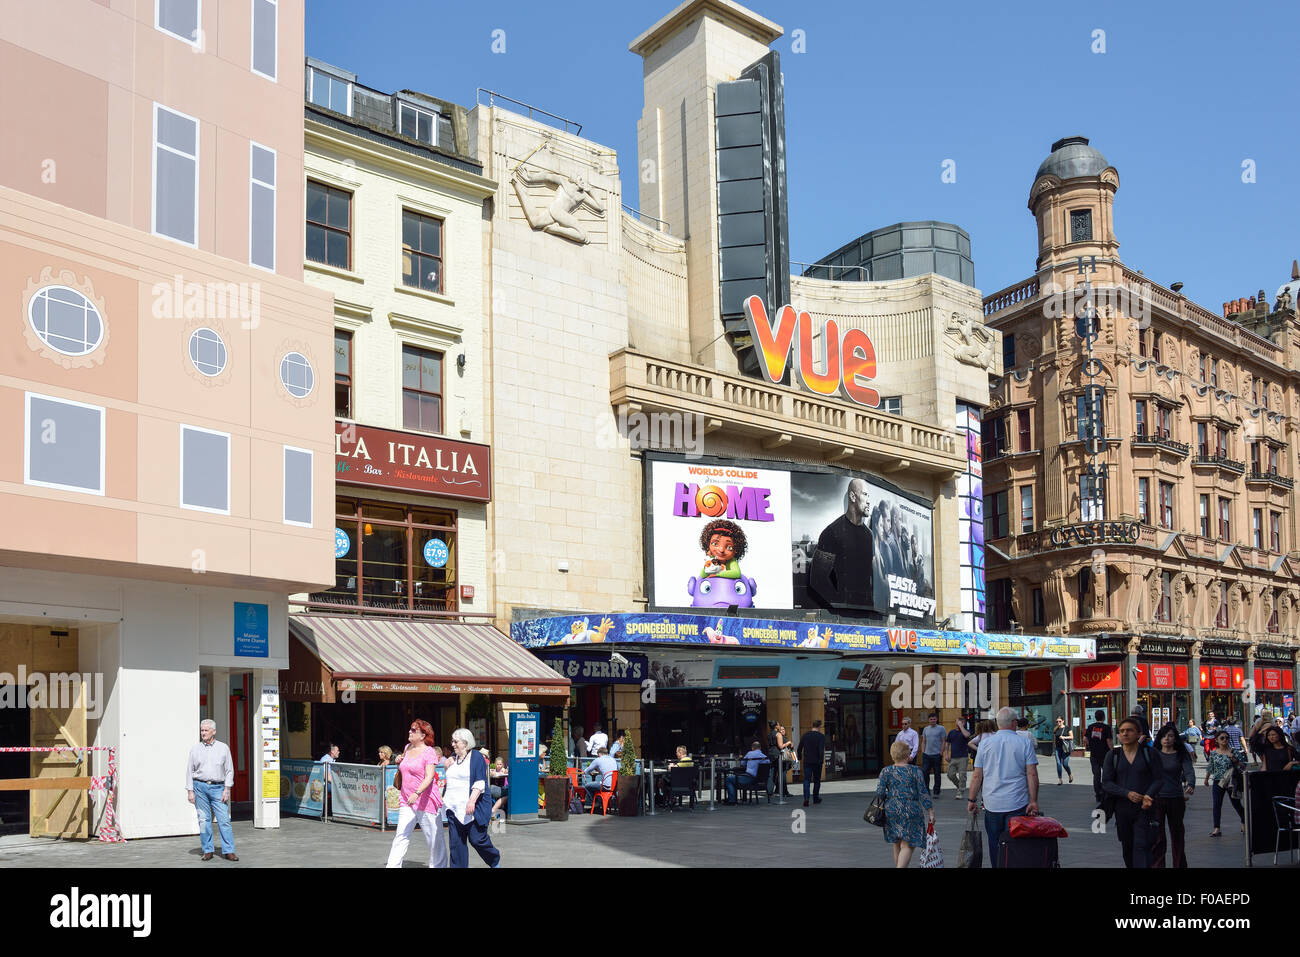 Vue Cinema, Leicester Square, West End, City of Westminster, London, England, United Kingdom - Stock Image